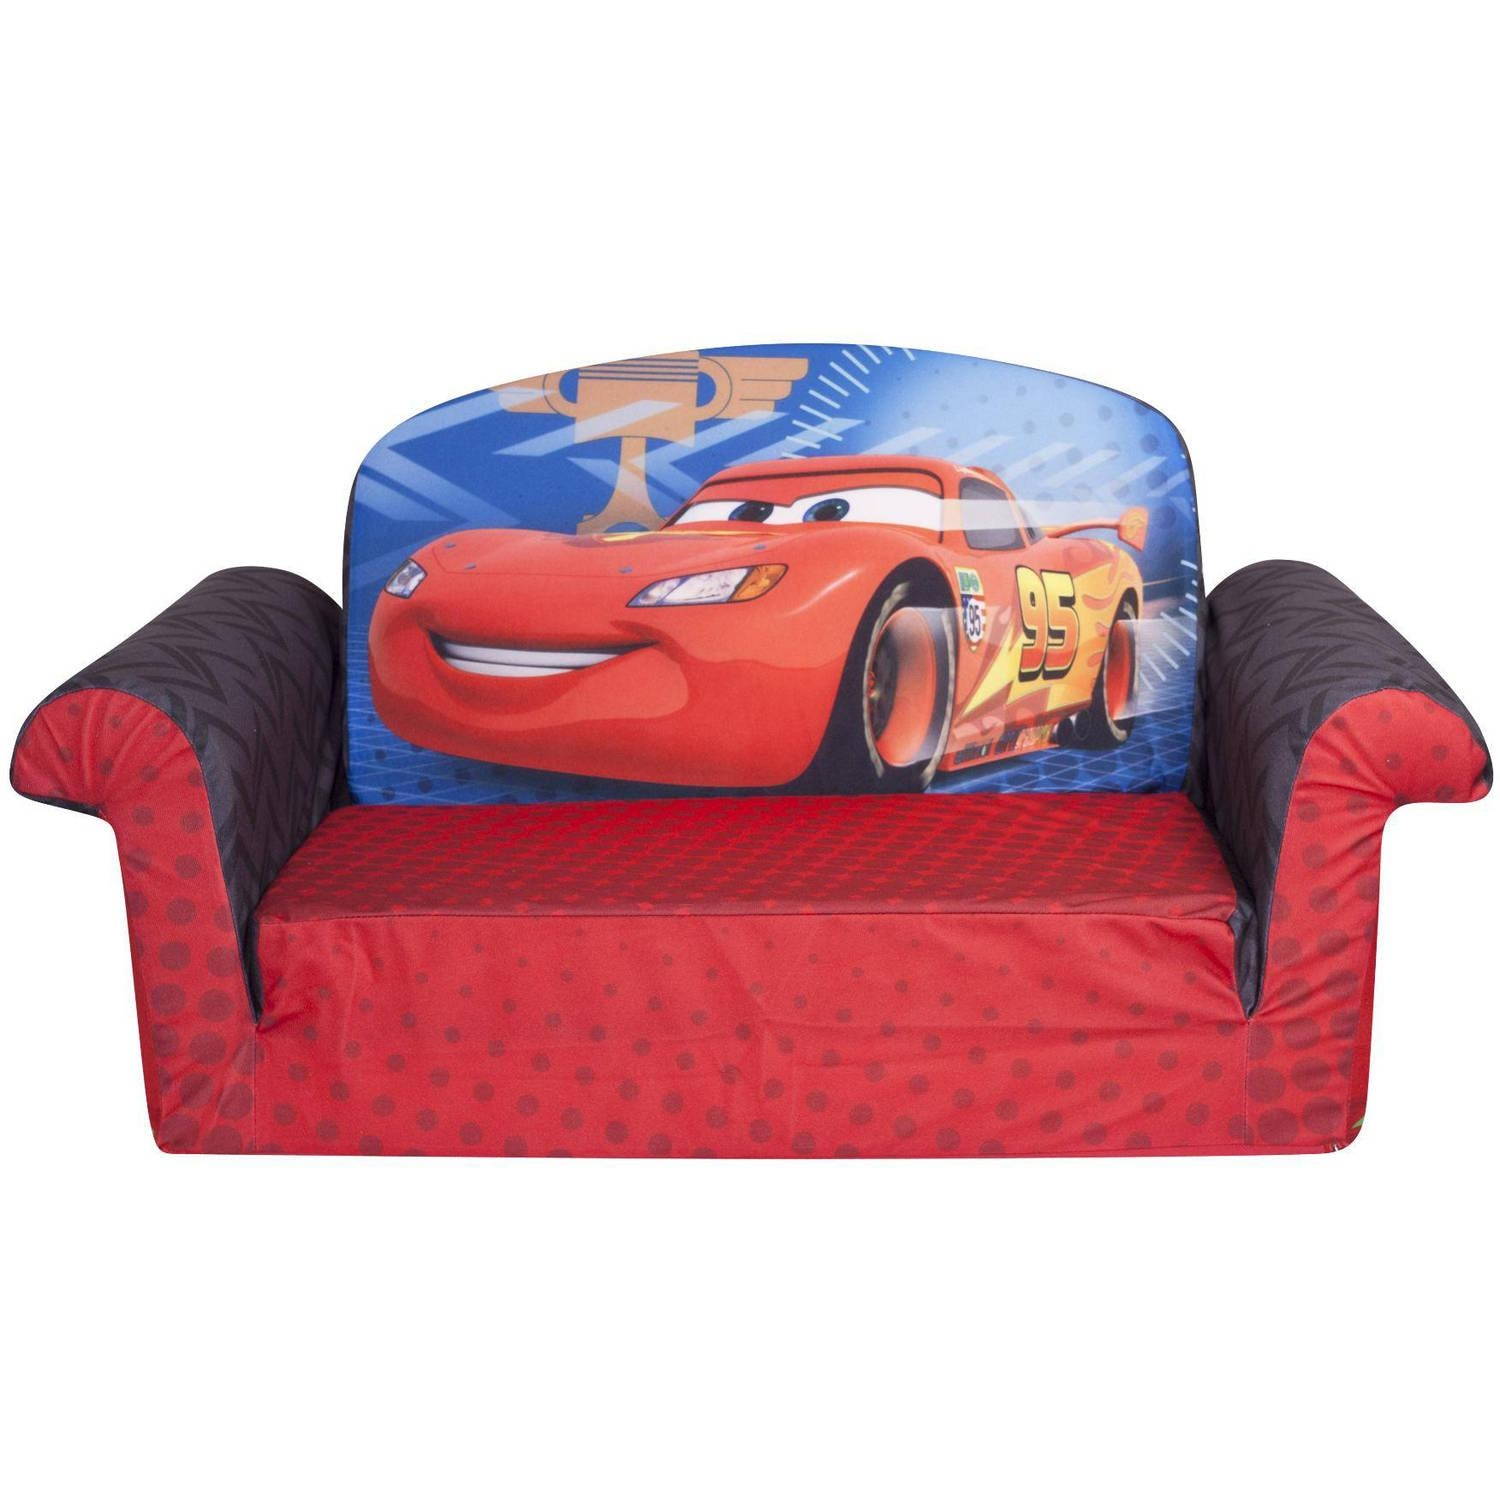 Marshmallow 2 In 1 Flip Open Sofa, Disney Cars 2 – Walmart Pertaining To Flip Out Sofa Bed Toddlers (Image 9 of 20)